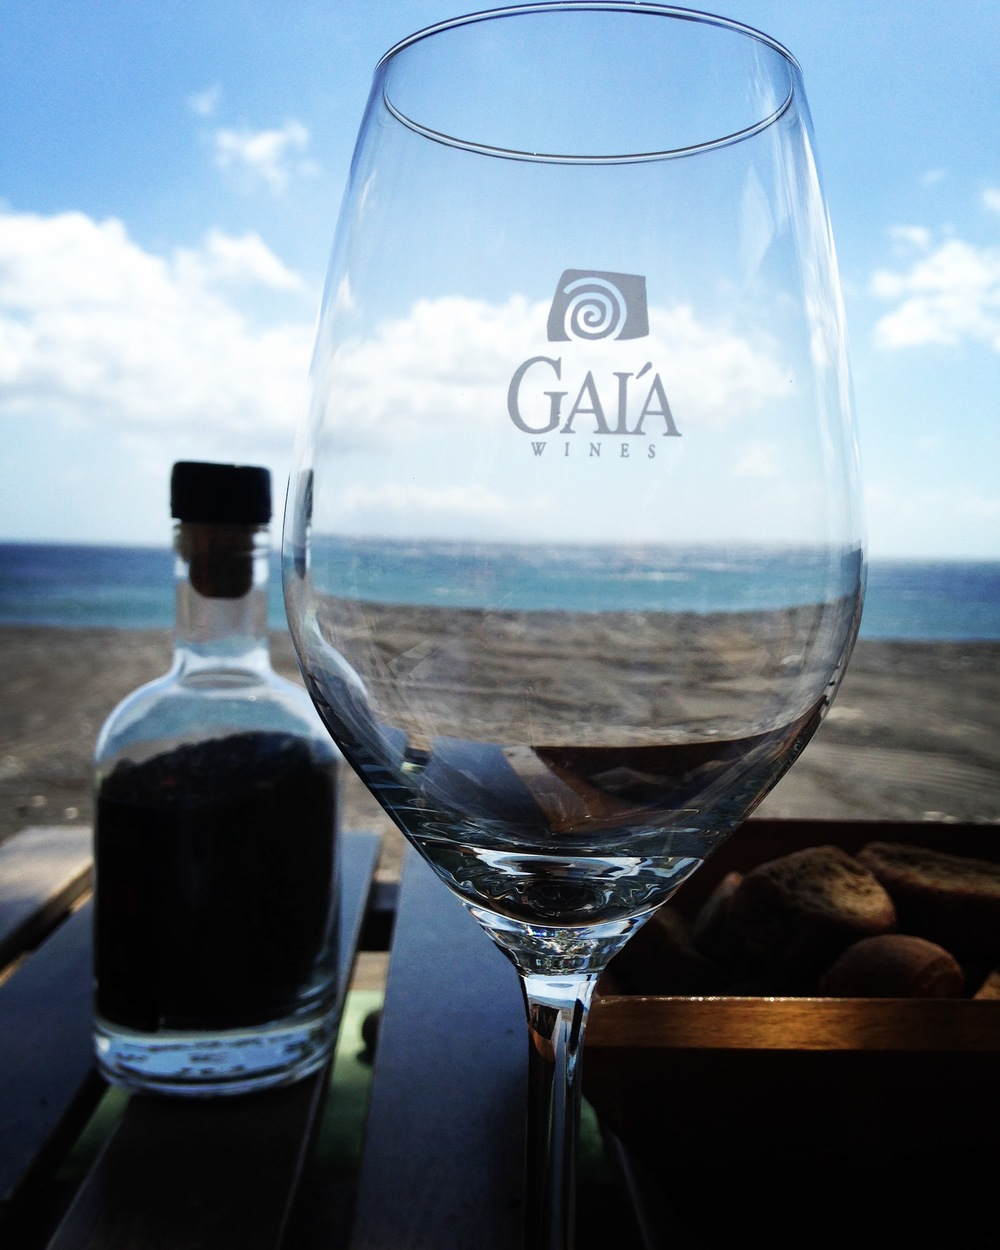 Gaia winery